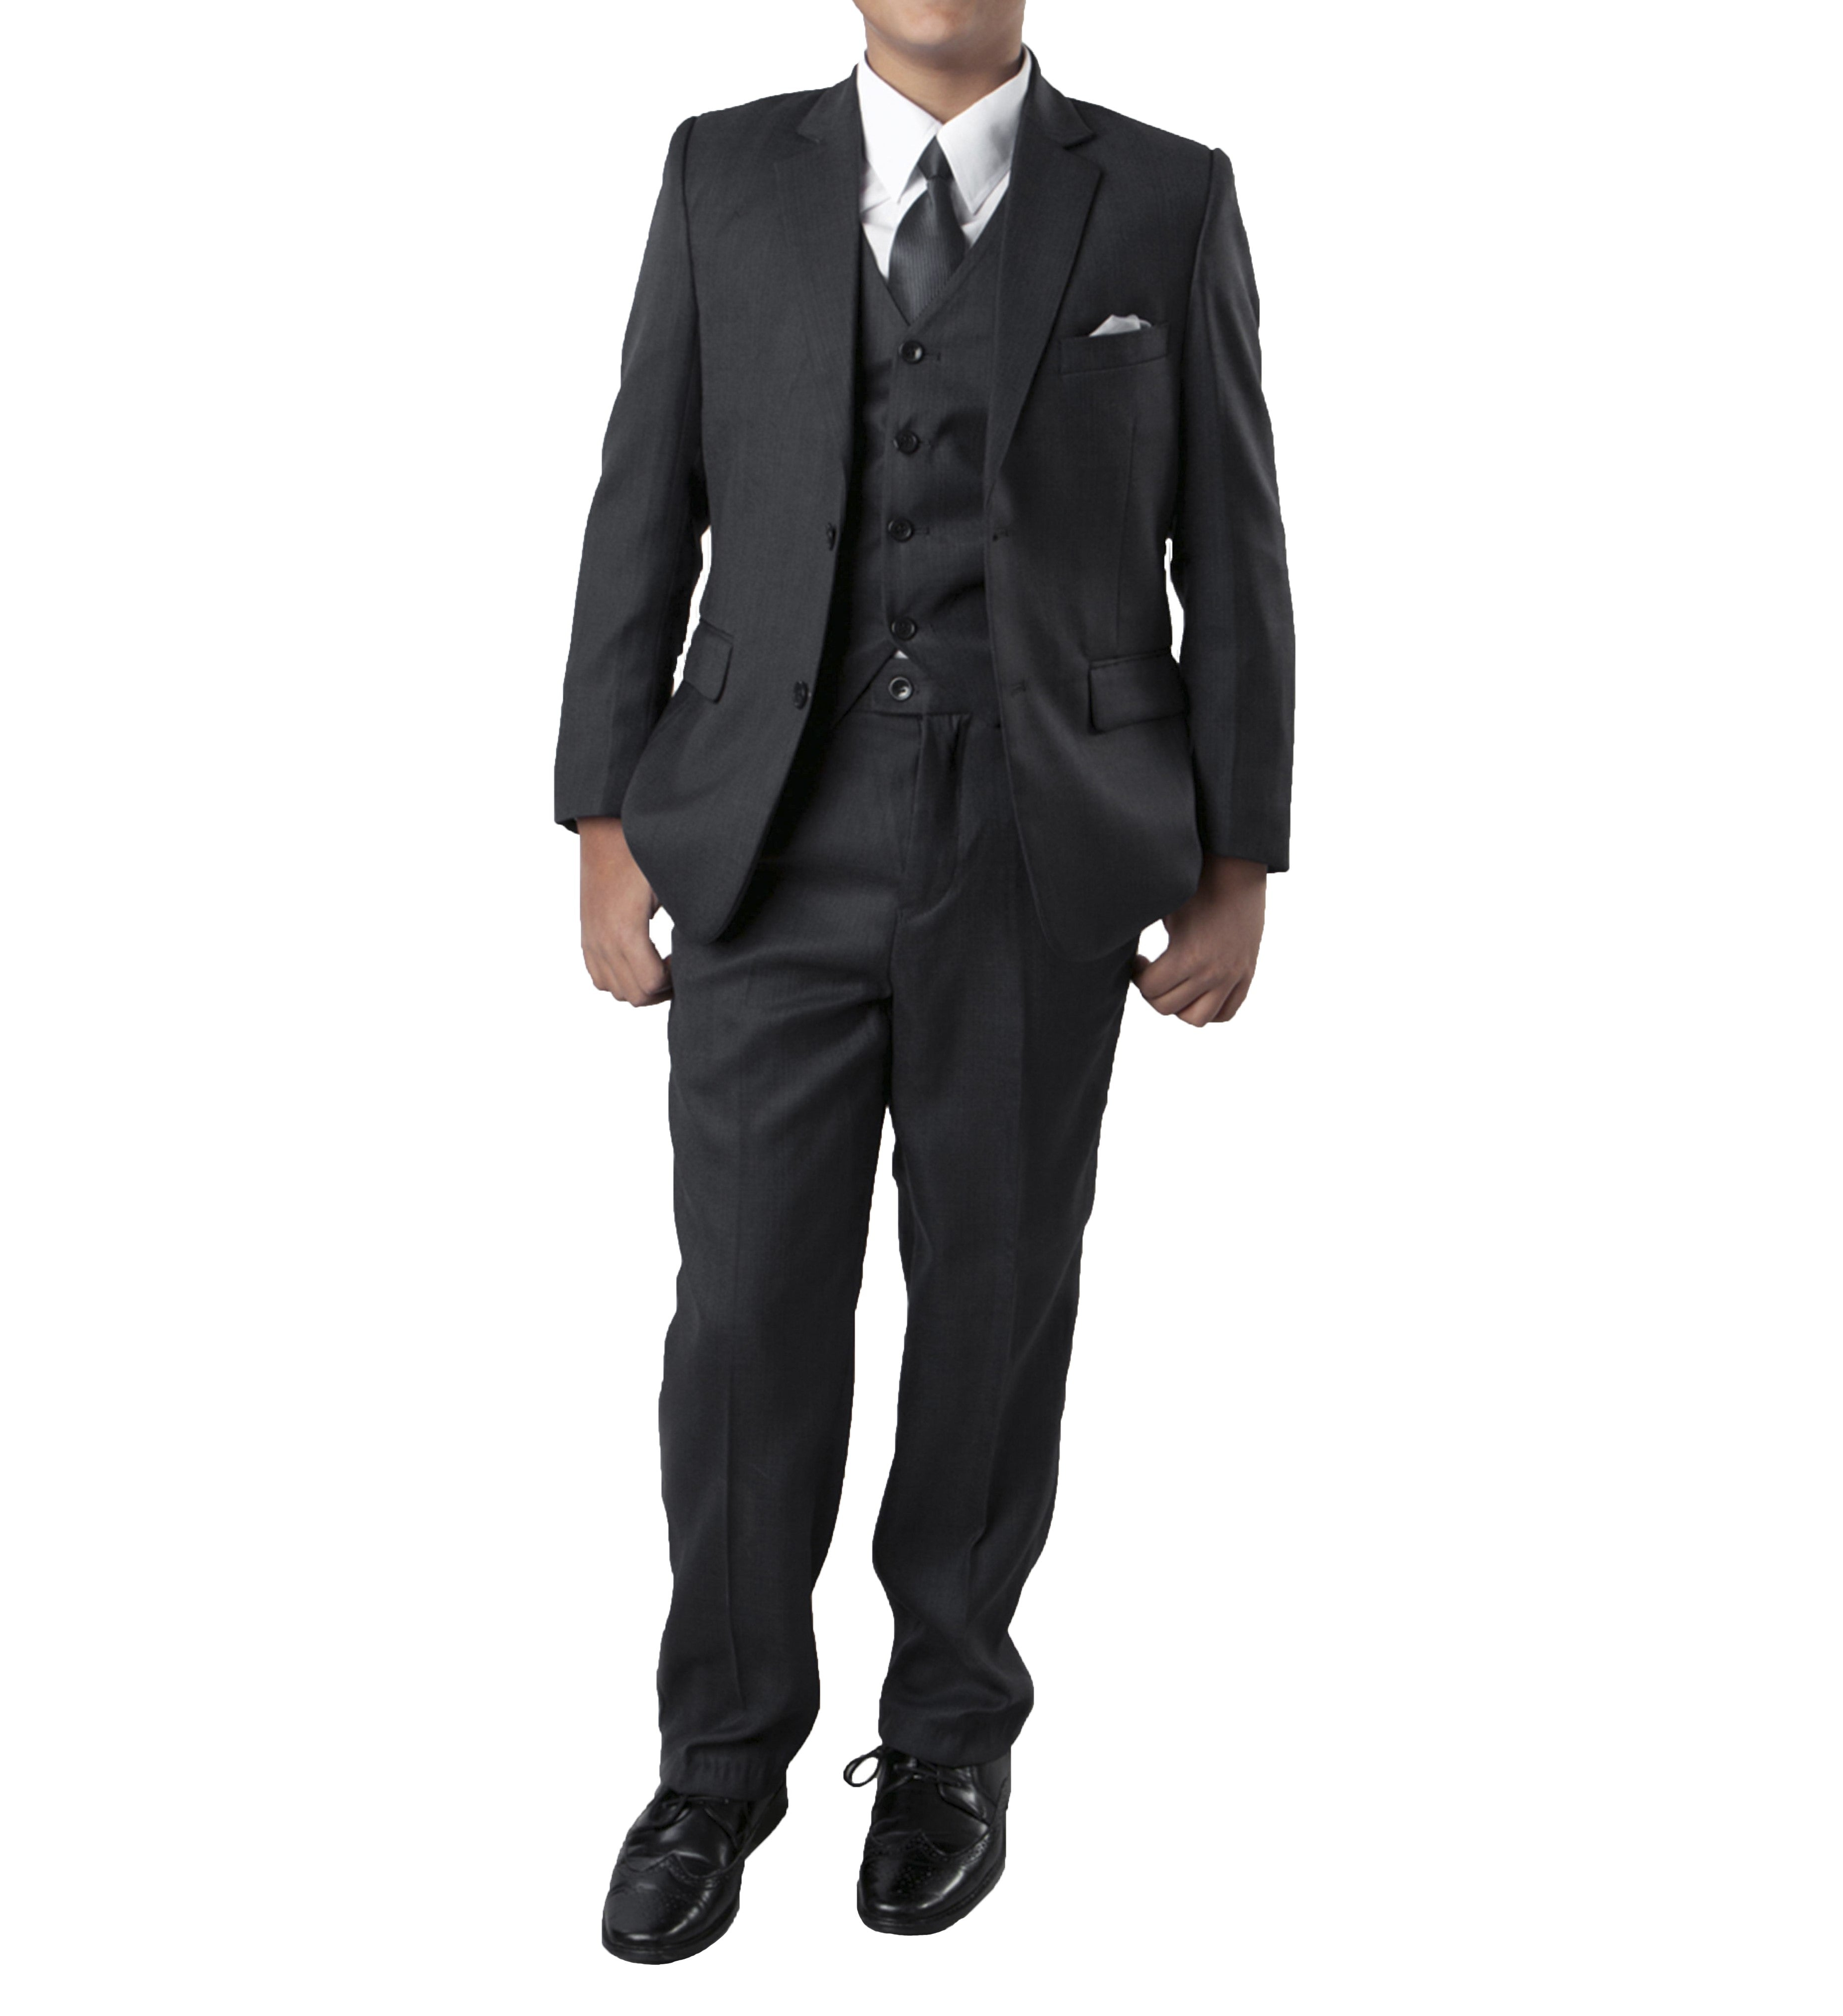 Tazio Charcoal Grey Formal Classic Fit Suits For Boys